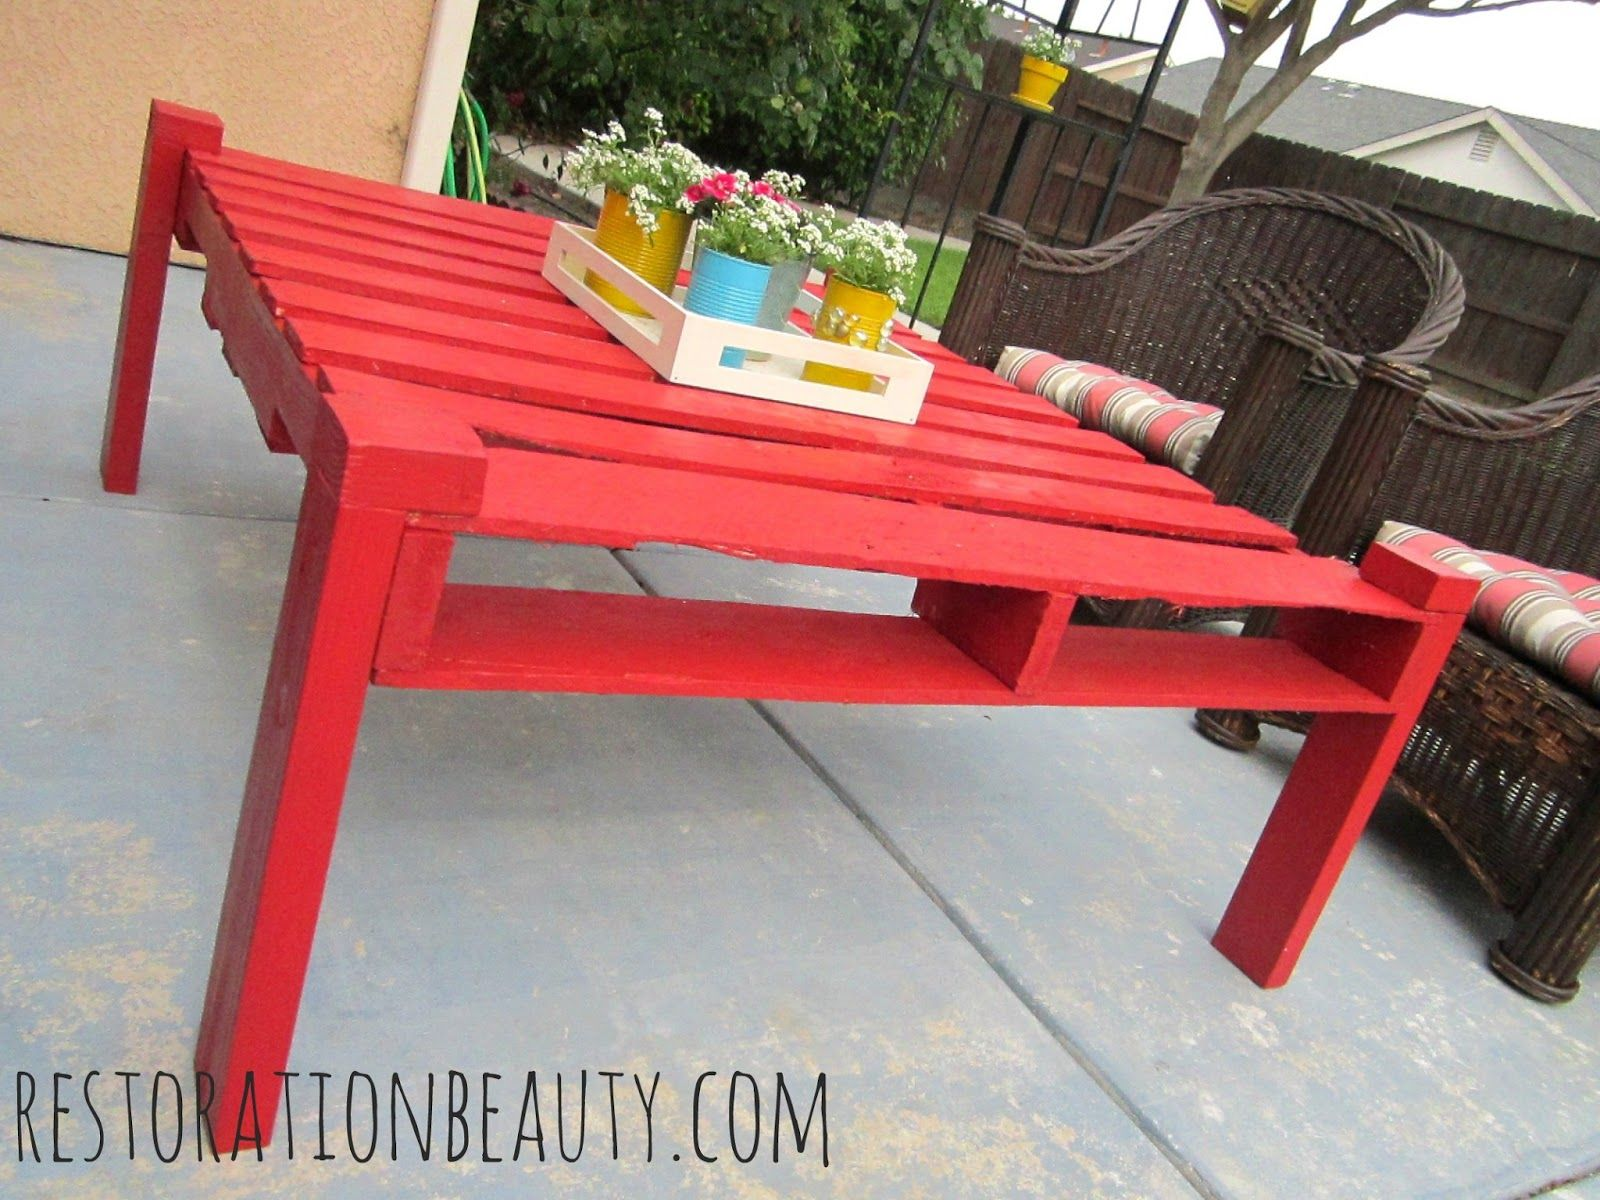 wooden pallet patio furniture. Crafts Made From Wooden Pallets | Displaying 20 Images For - Pallet Patio Furniture Pinterest.